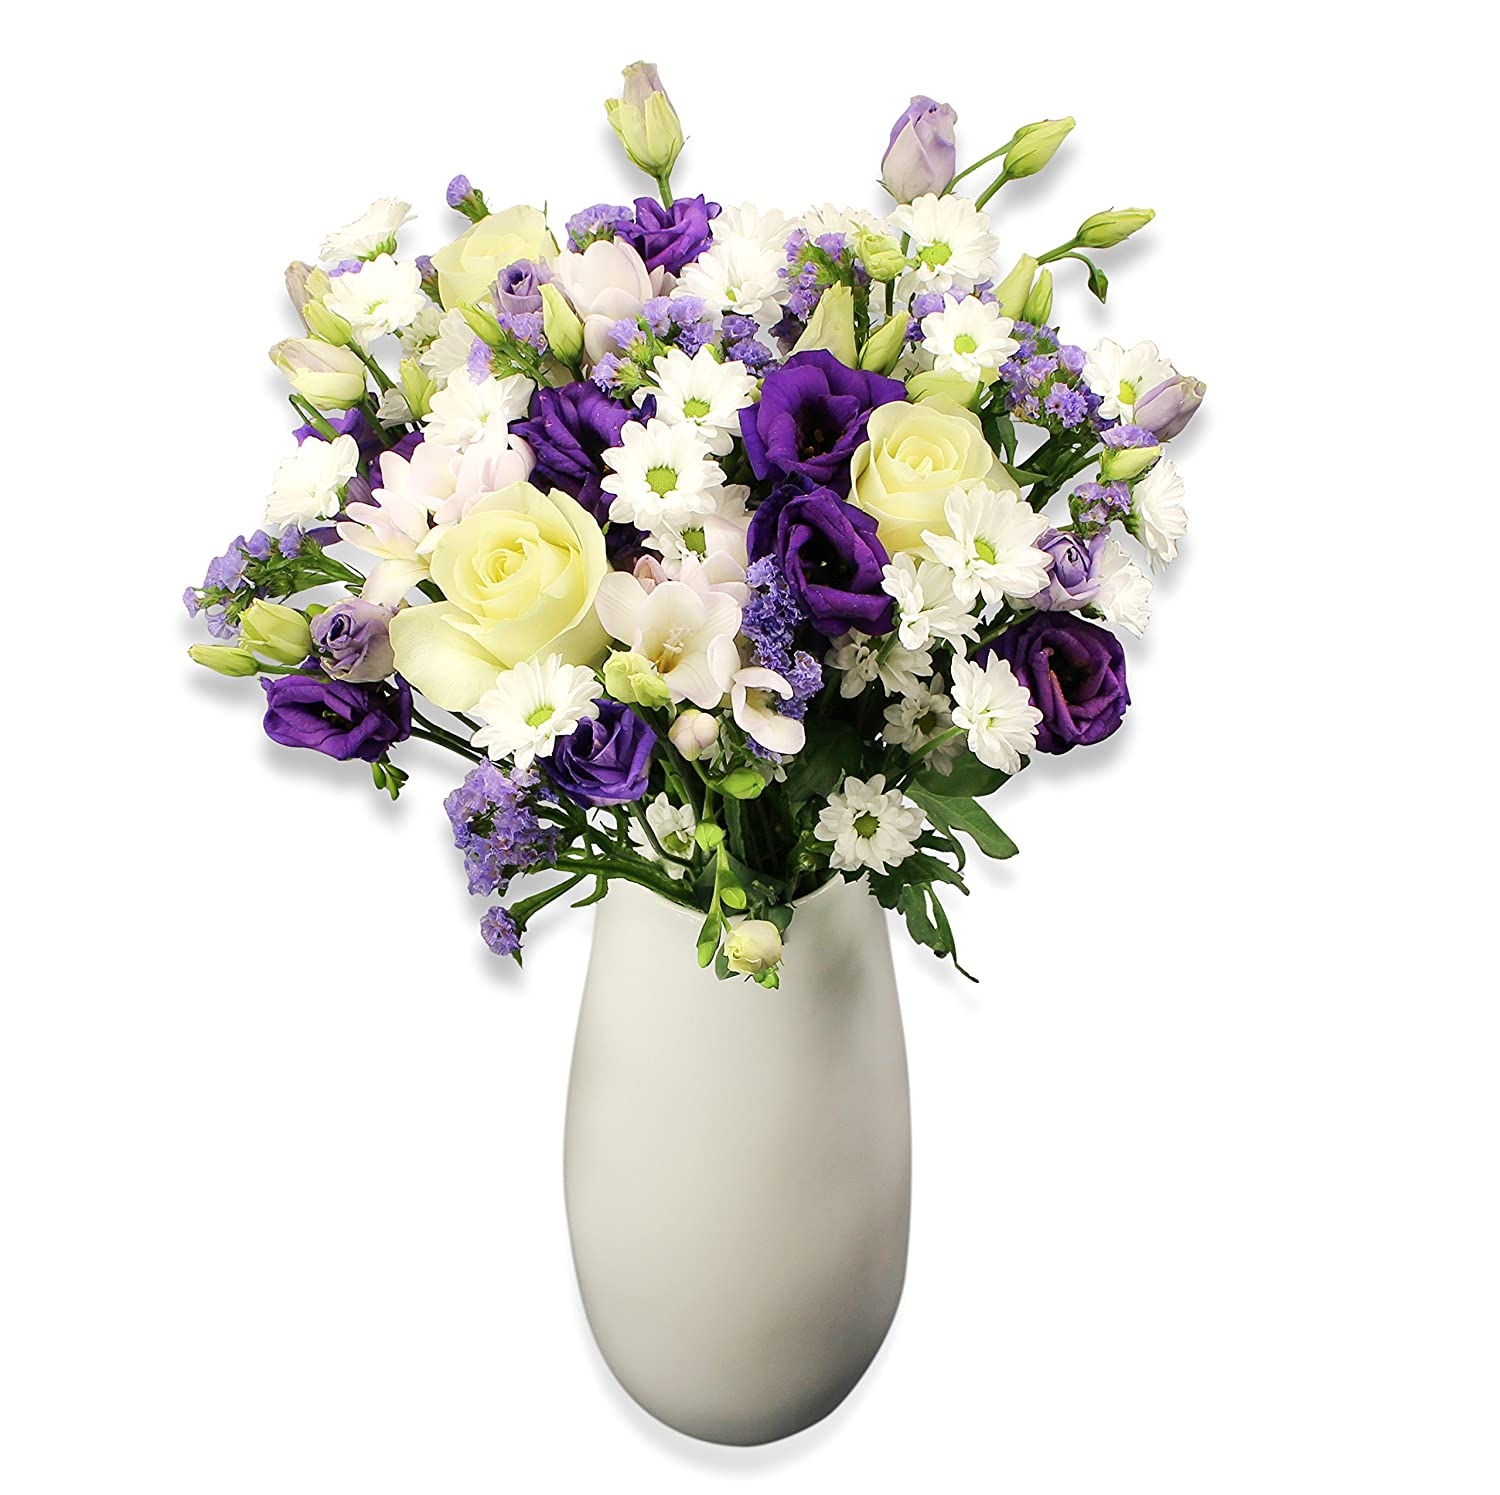 Fresh flowers delivered next day free uk delivery handwritten fresh flowers delivered next day free uk delivery handwritten card beautiful blue bouquet of flowers arranged by a skilled florist and presented in izmirmasajfo